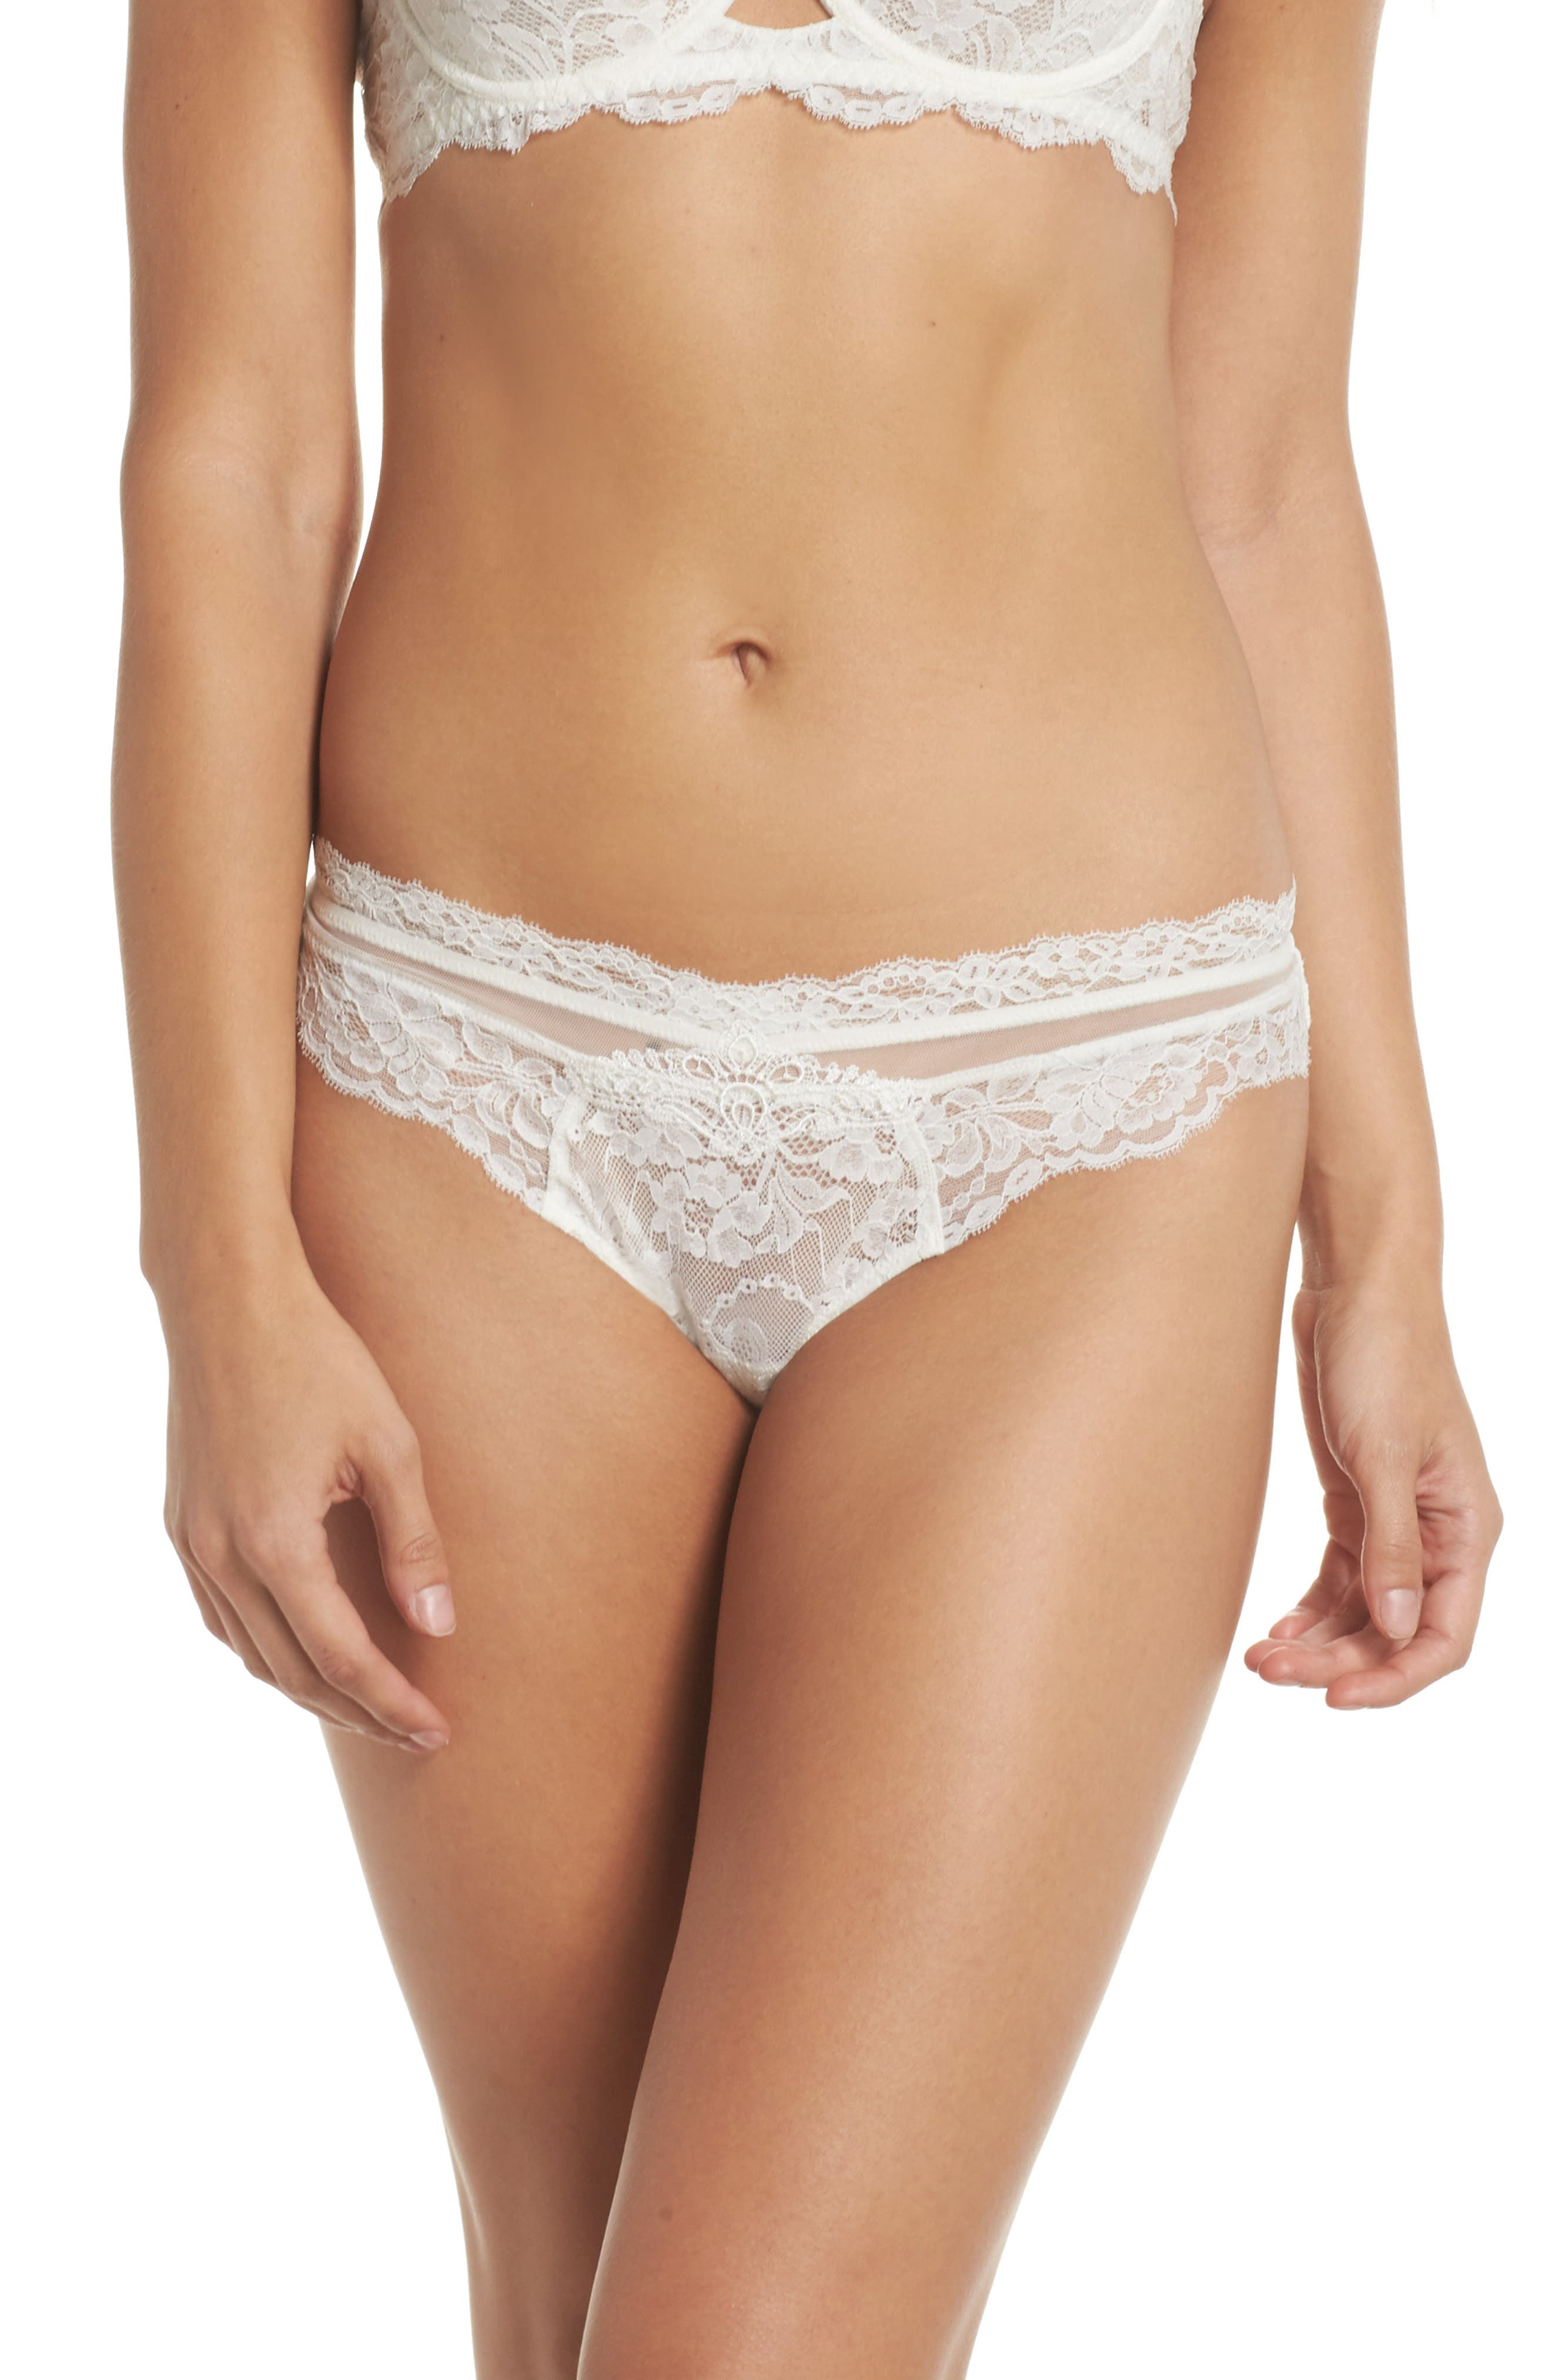 EPURE BY LISE CHARMEL Exception Charme Thong, Main, color, 900